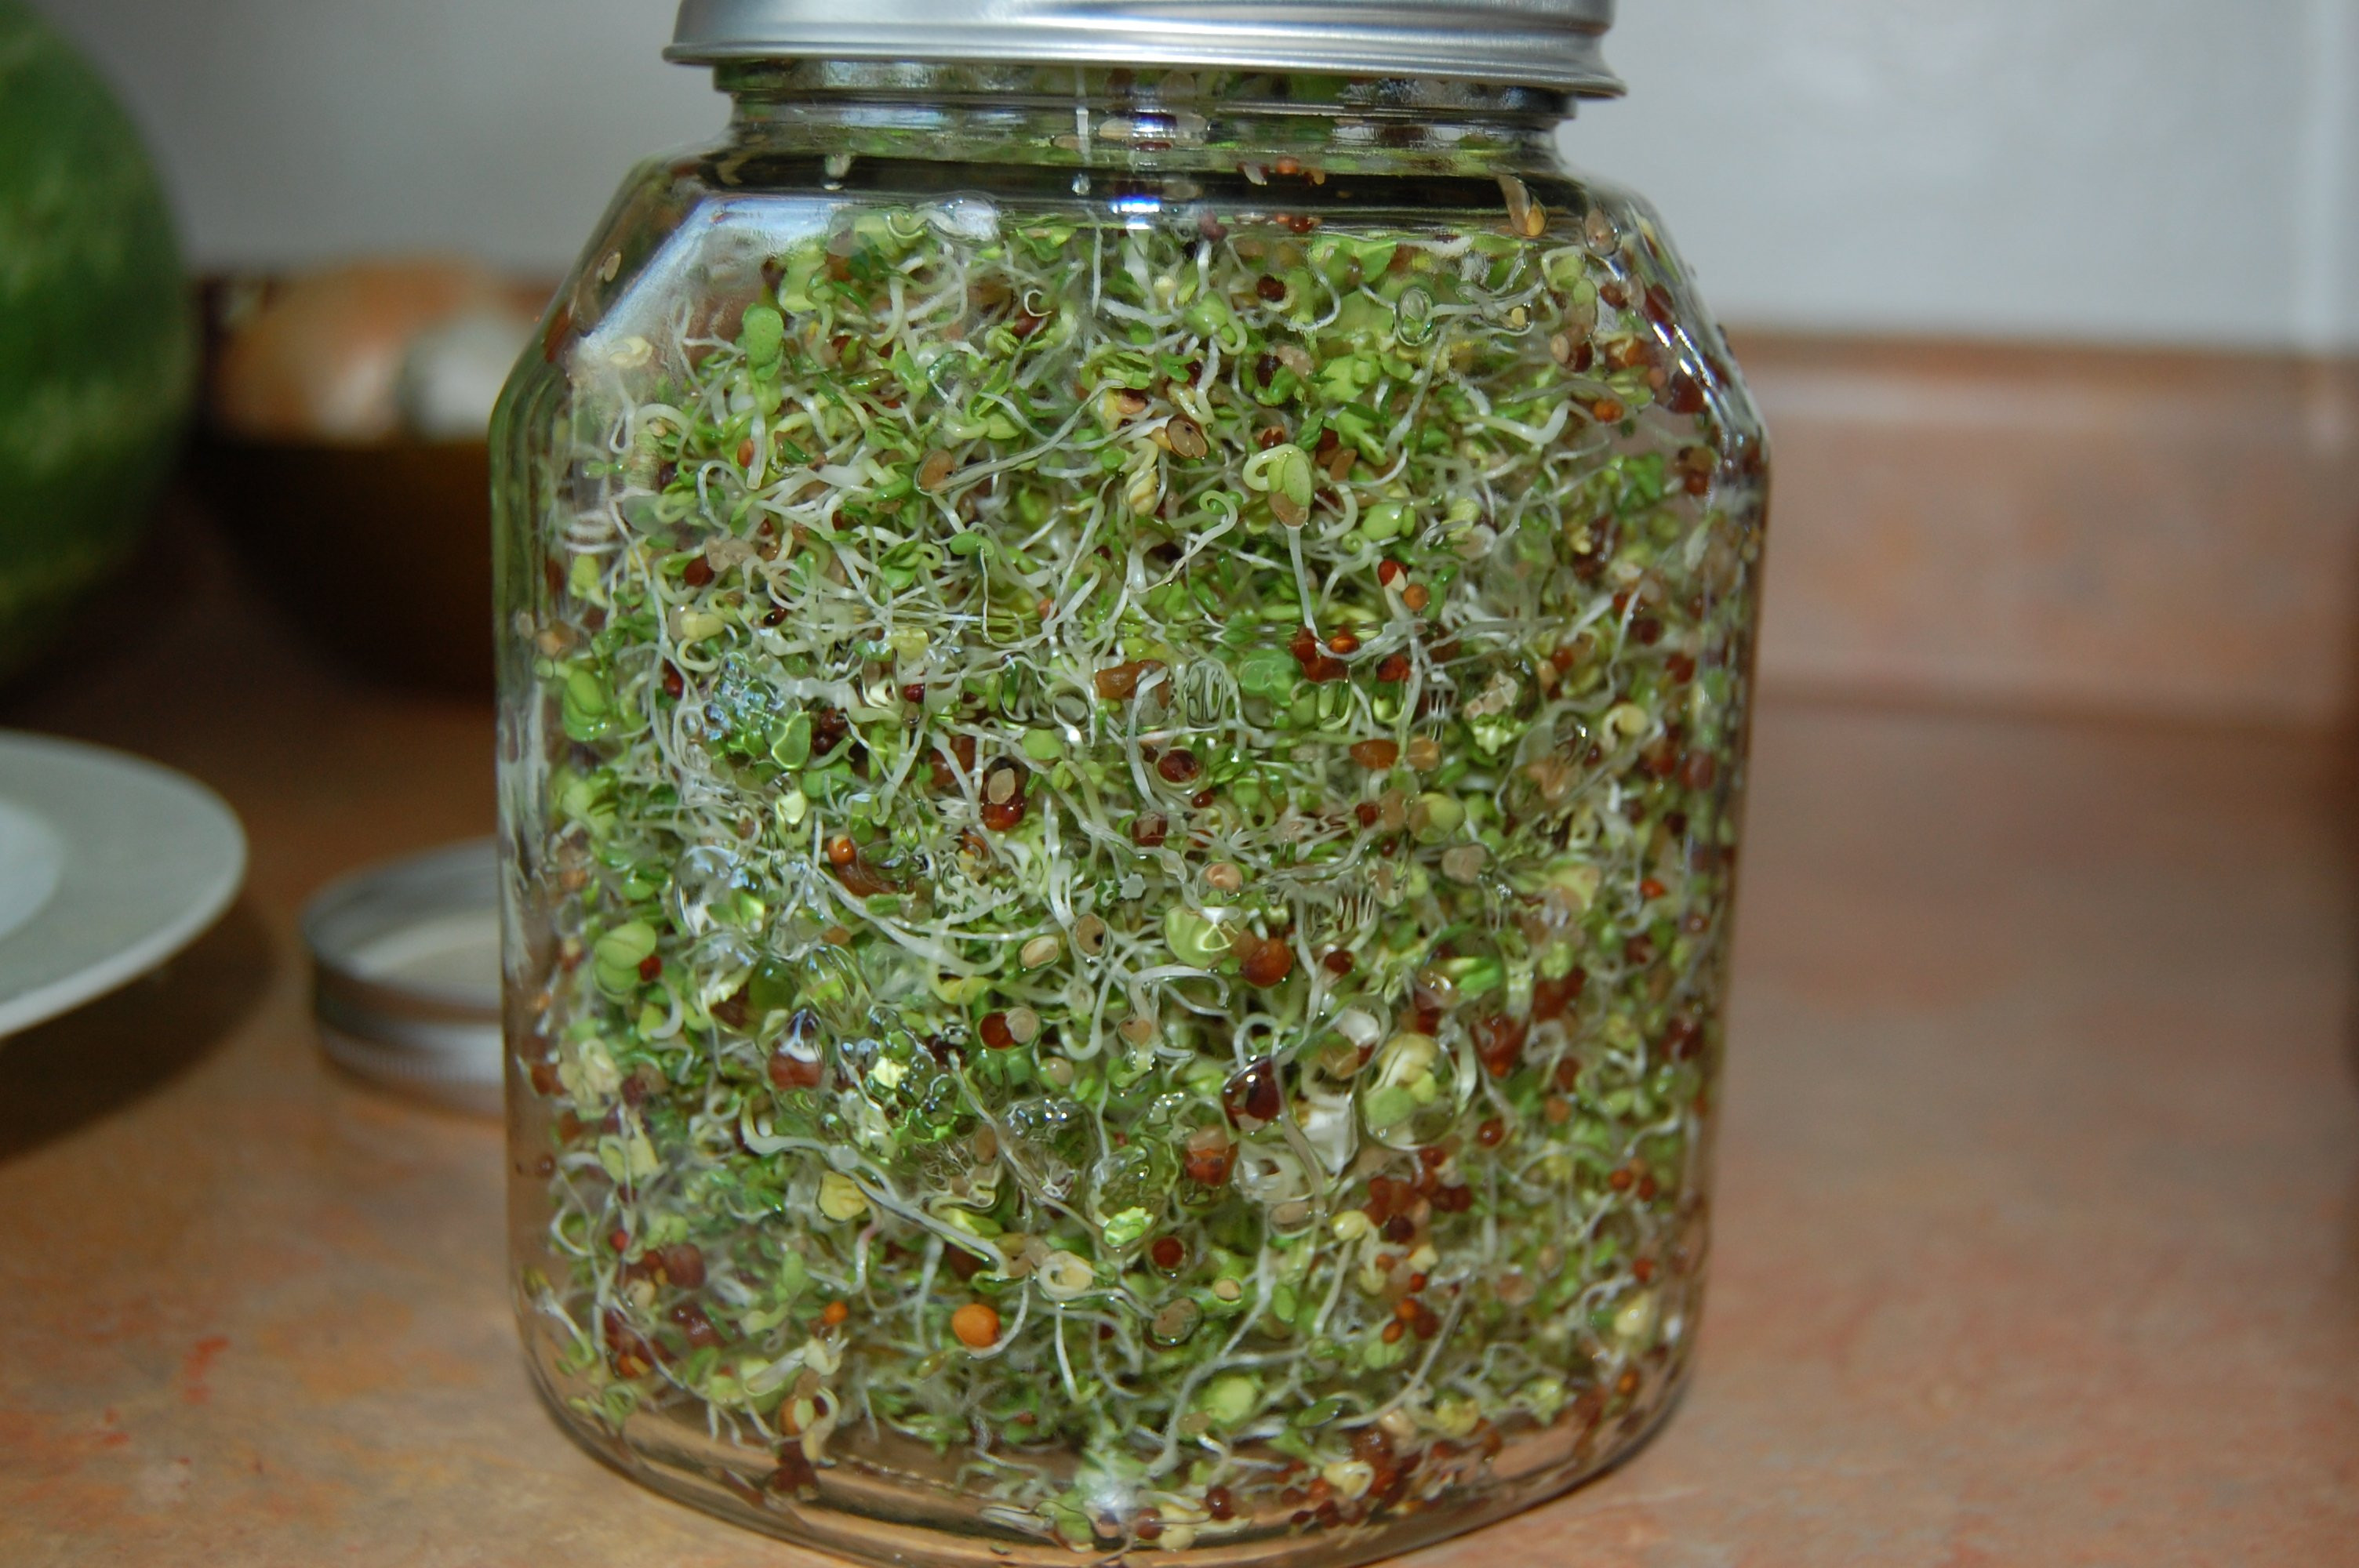 Rhonda Patrick Broccoli Sprouts  The Insane Health Benefits of Broccoli Sprouts and how to